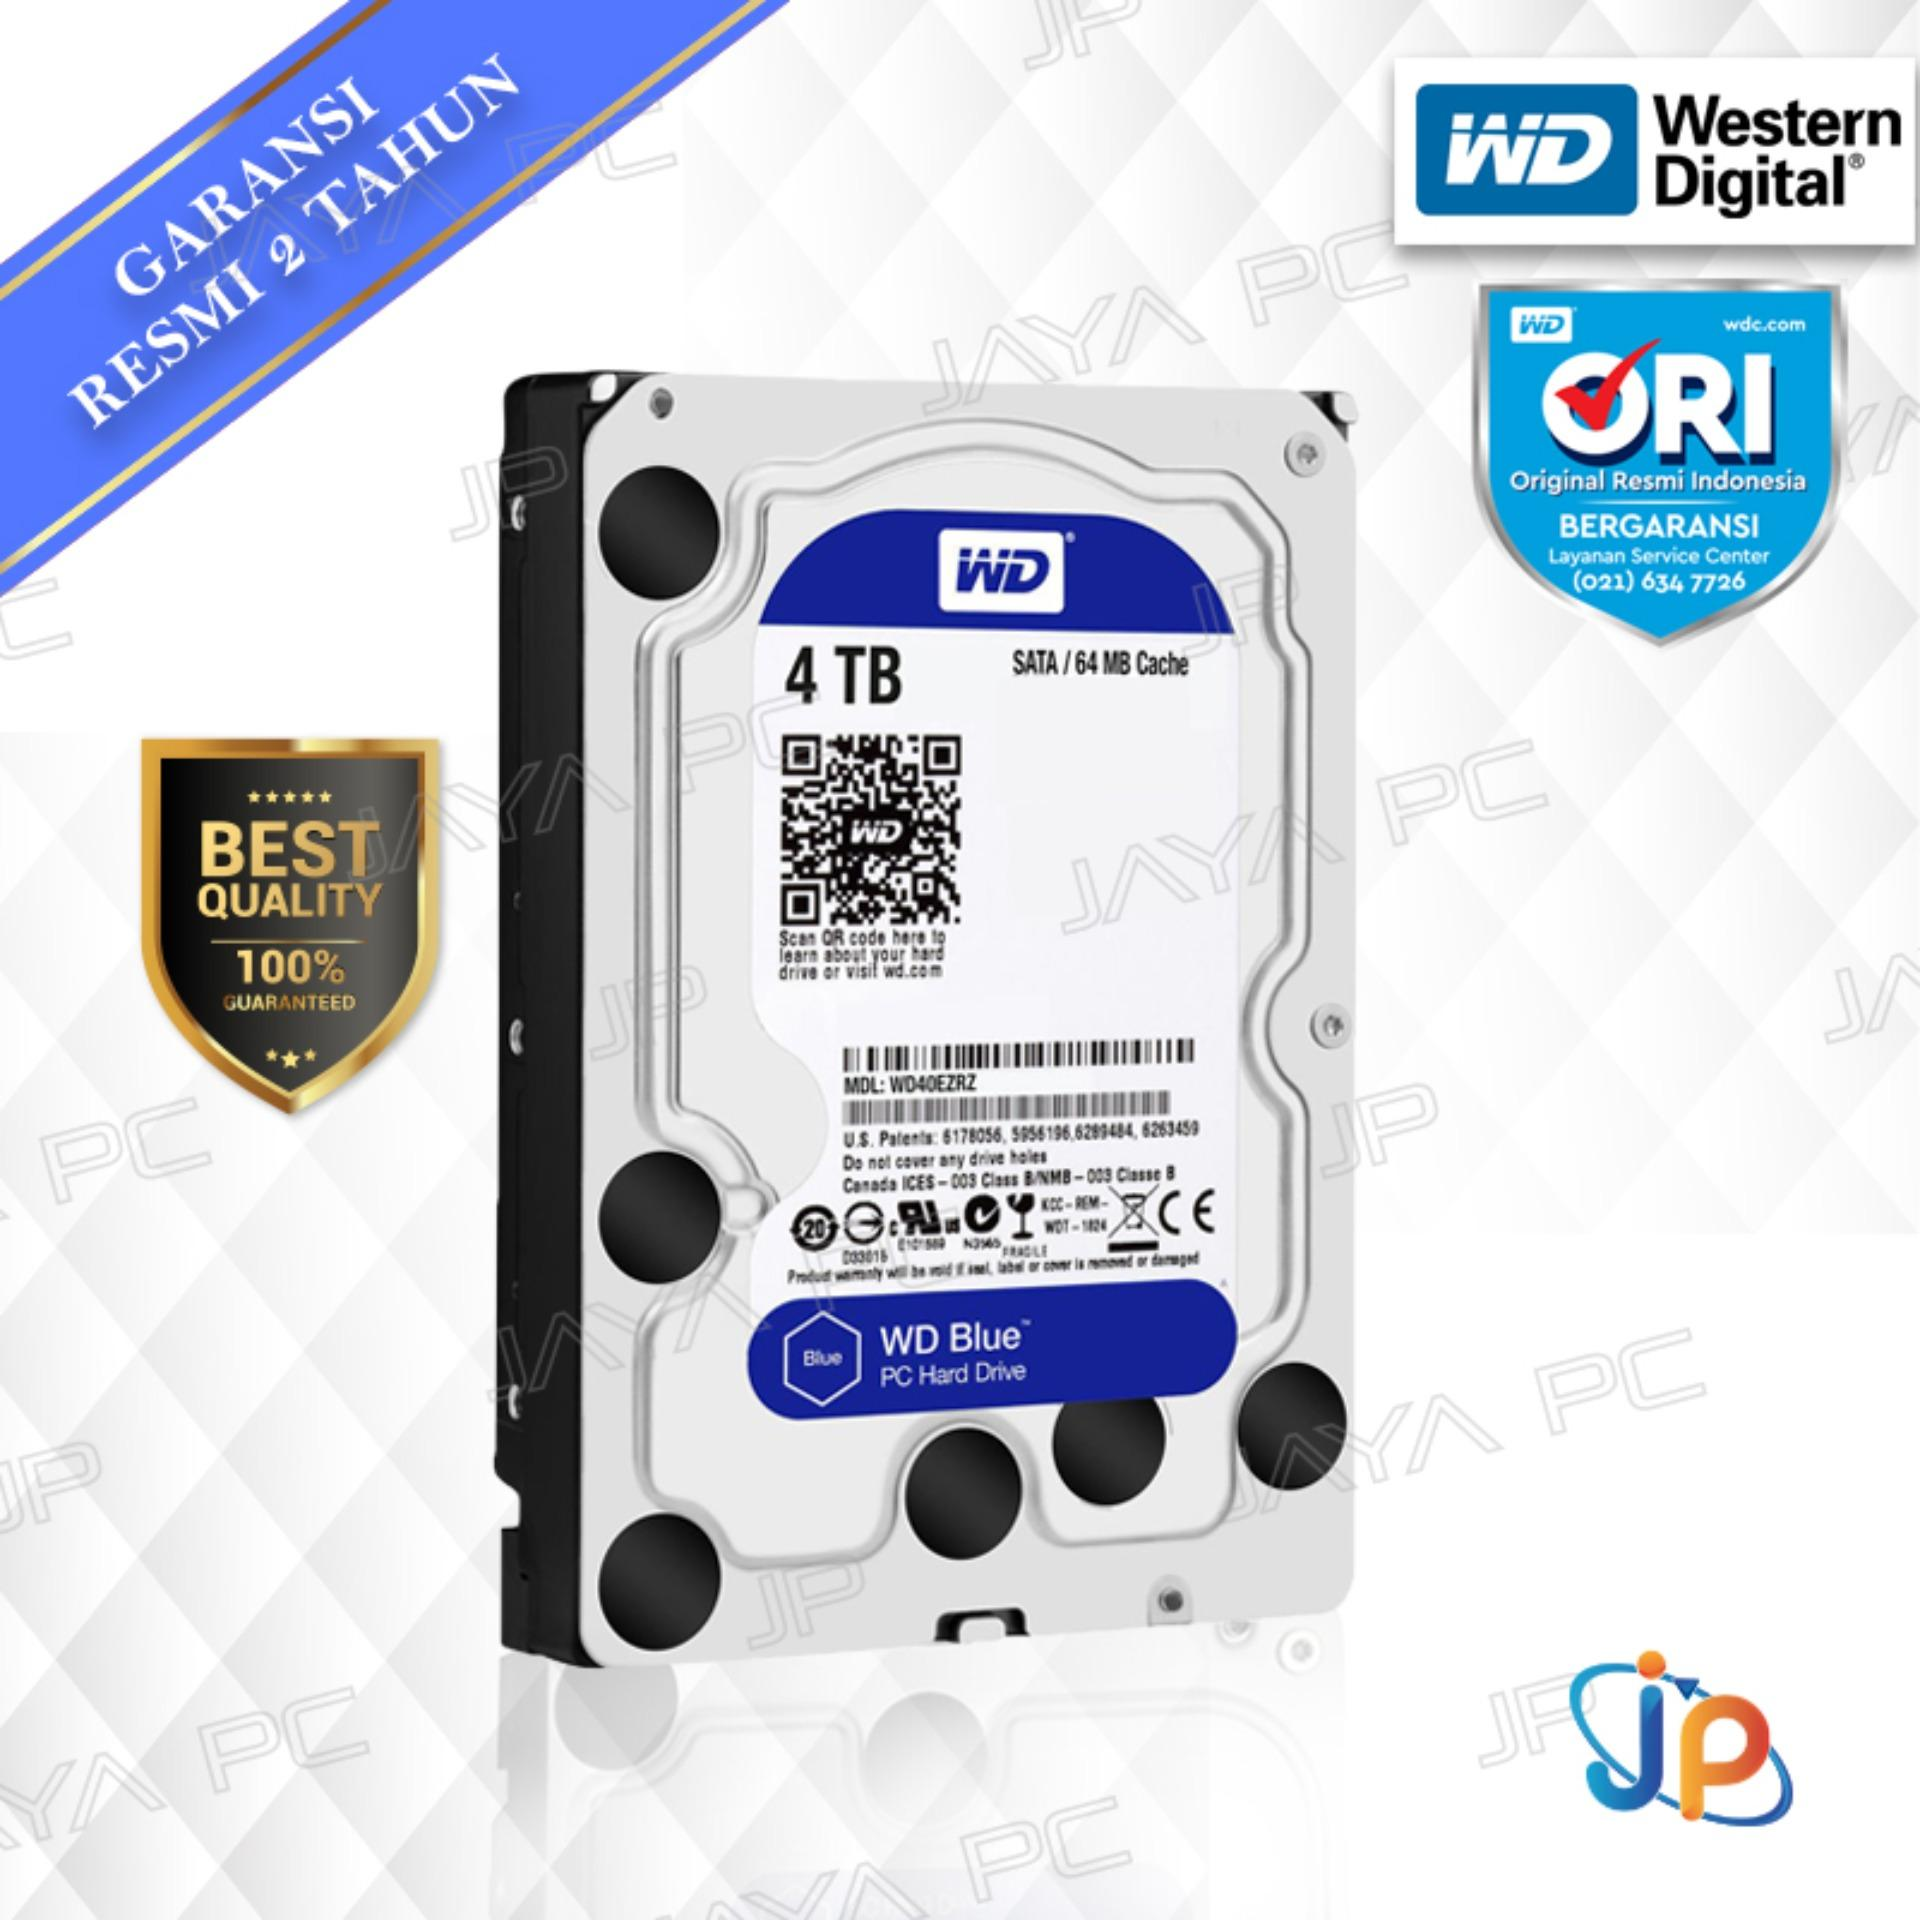 https://www.lazada.co.id/products/western-digital-wdc-blue-4tb-pc-sata3-64mb-5400-rpm-35-hdd-hardisk-harddisk-internal-hard-drive-i387472967-s421933295.html